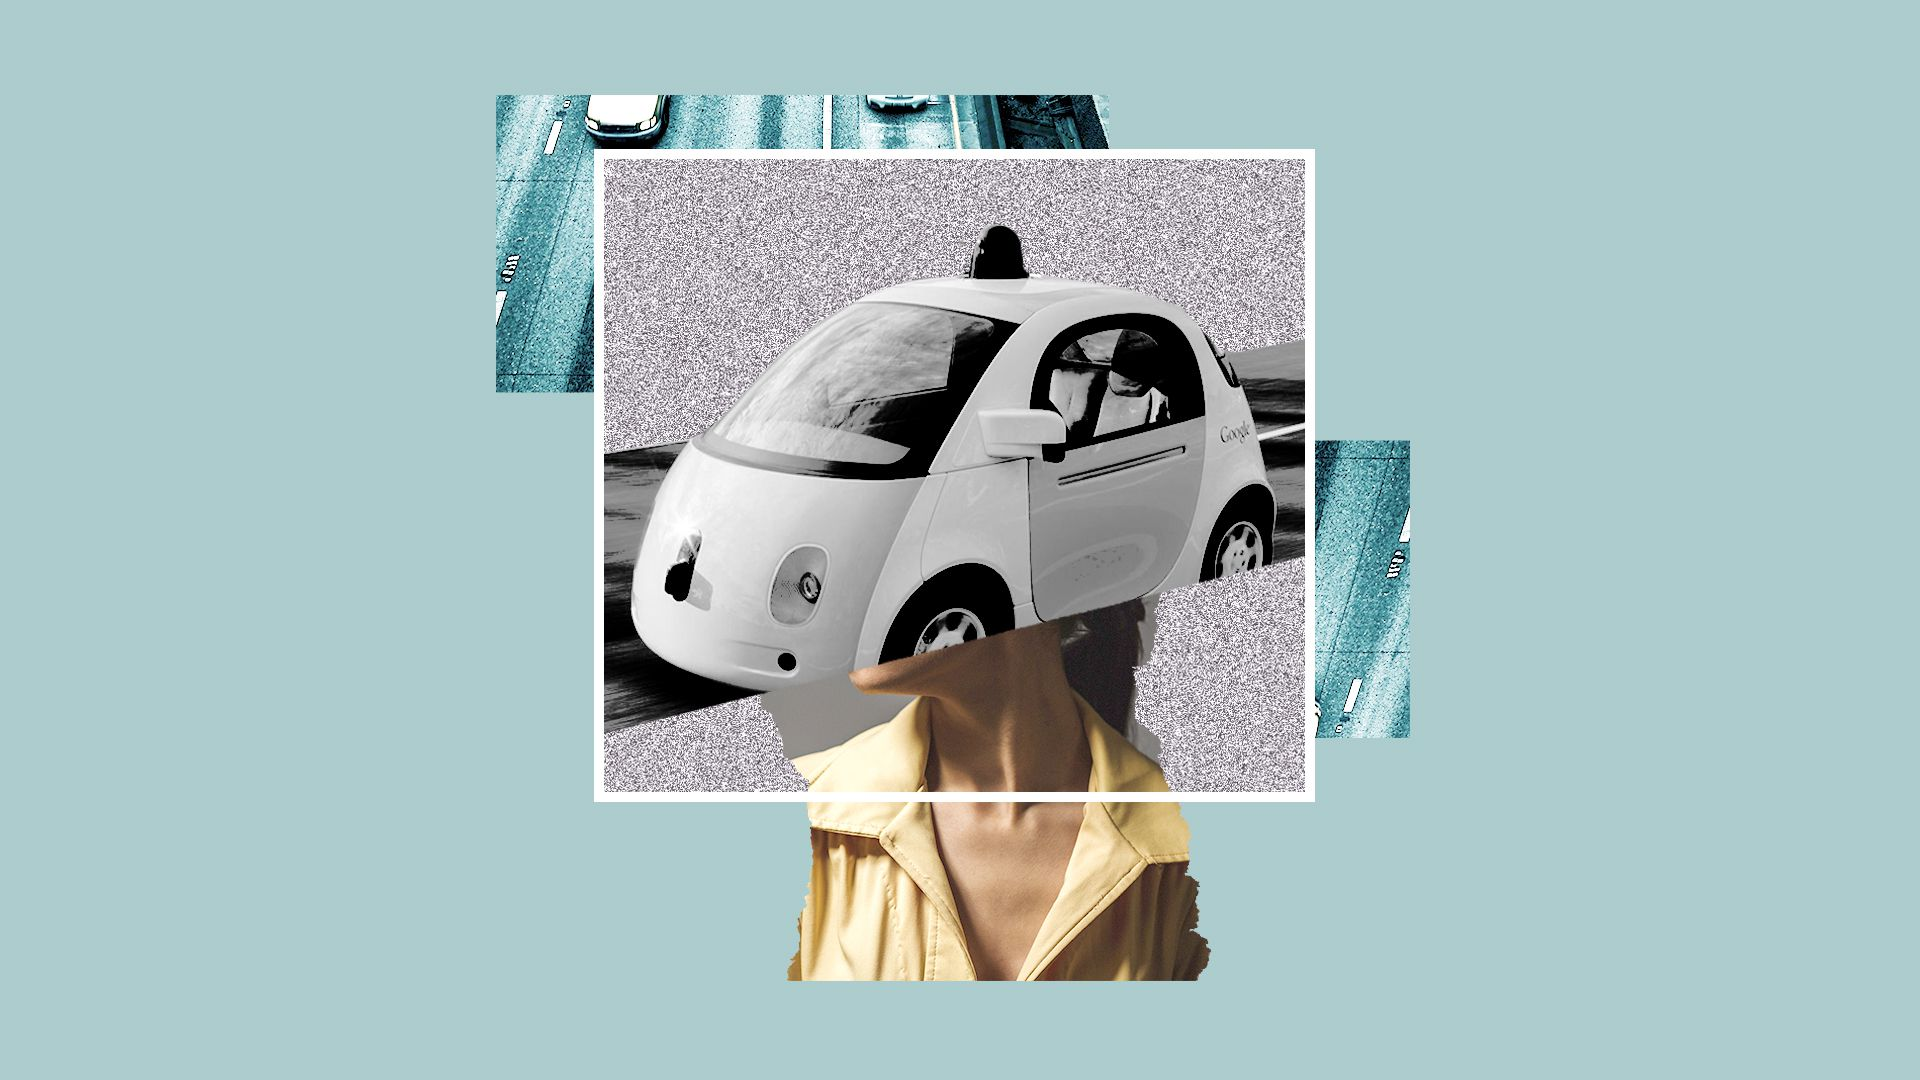 A person with a self-driving car for a head